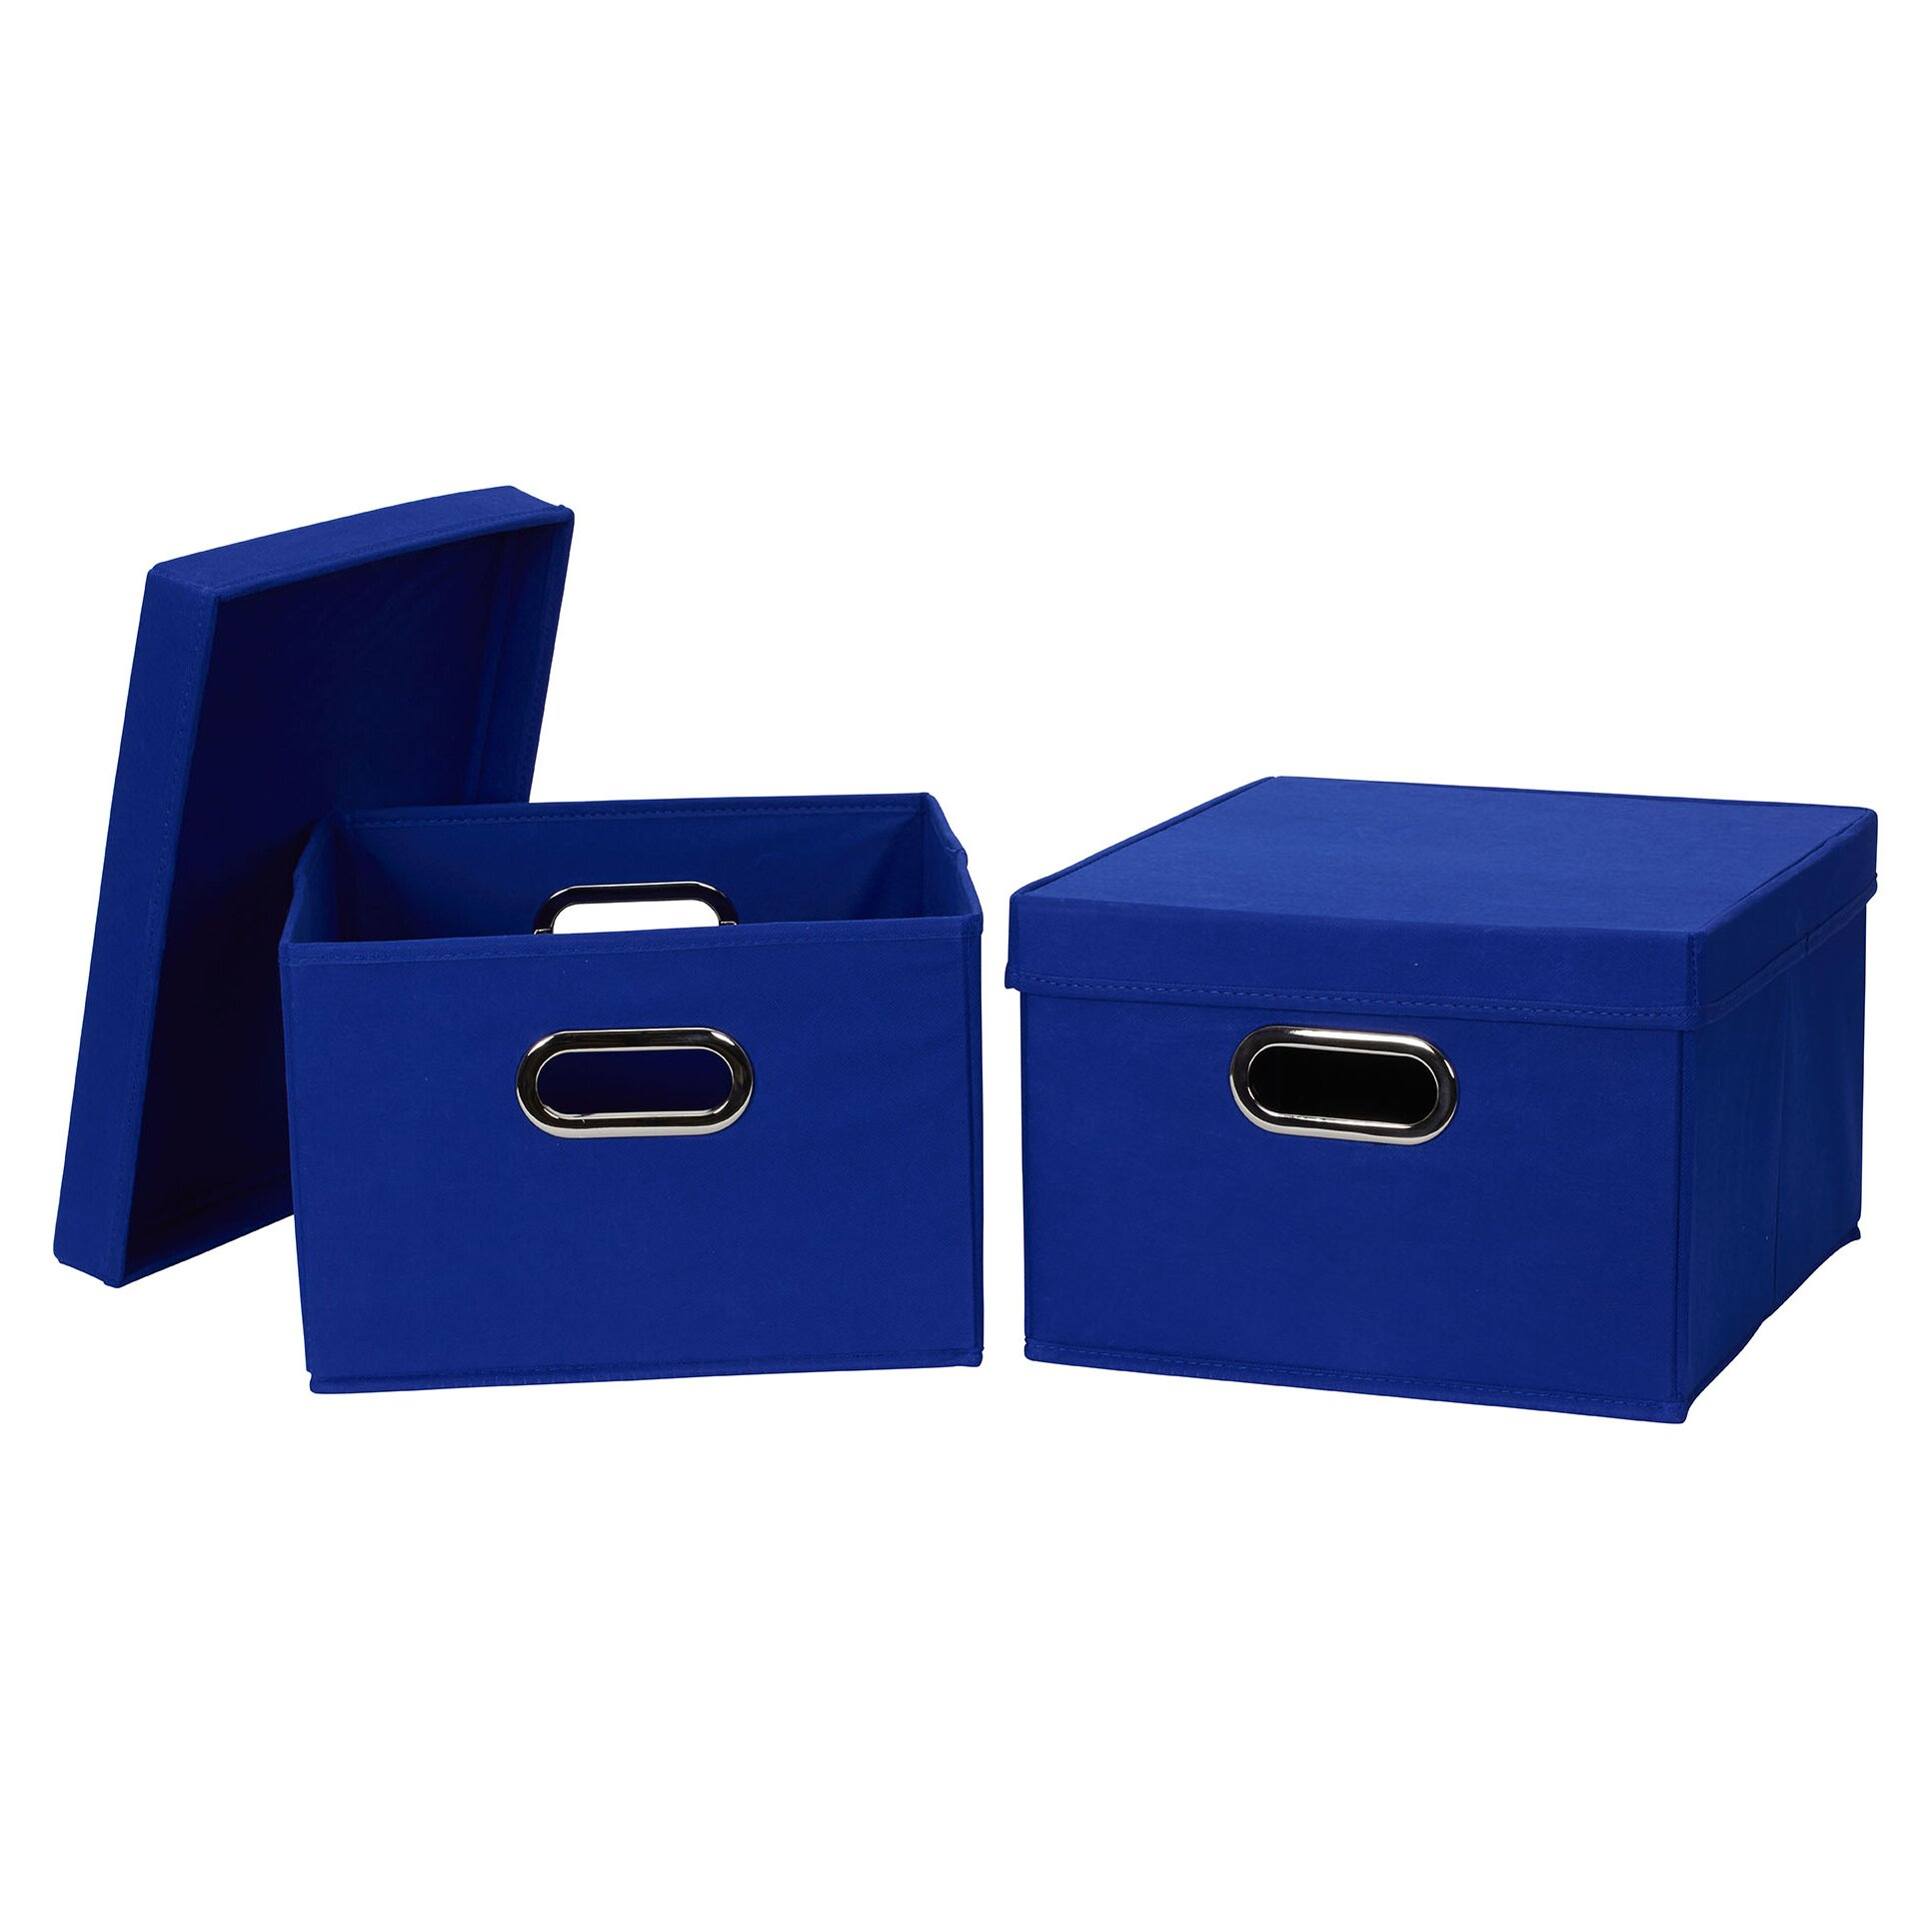 Household Essentials Collapsible Fabric Storage Box with